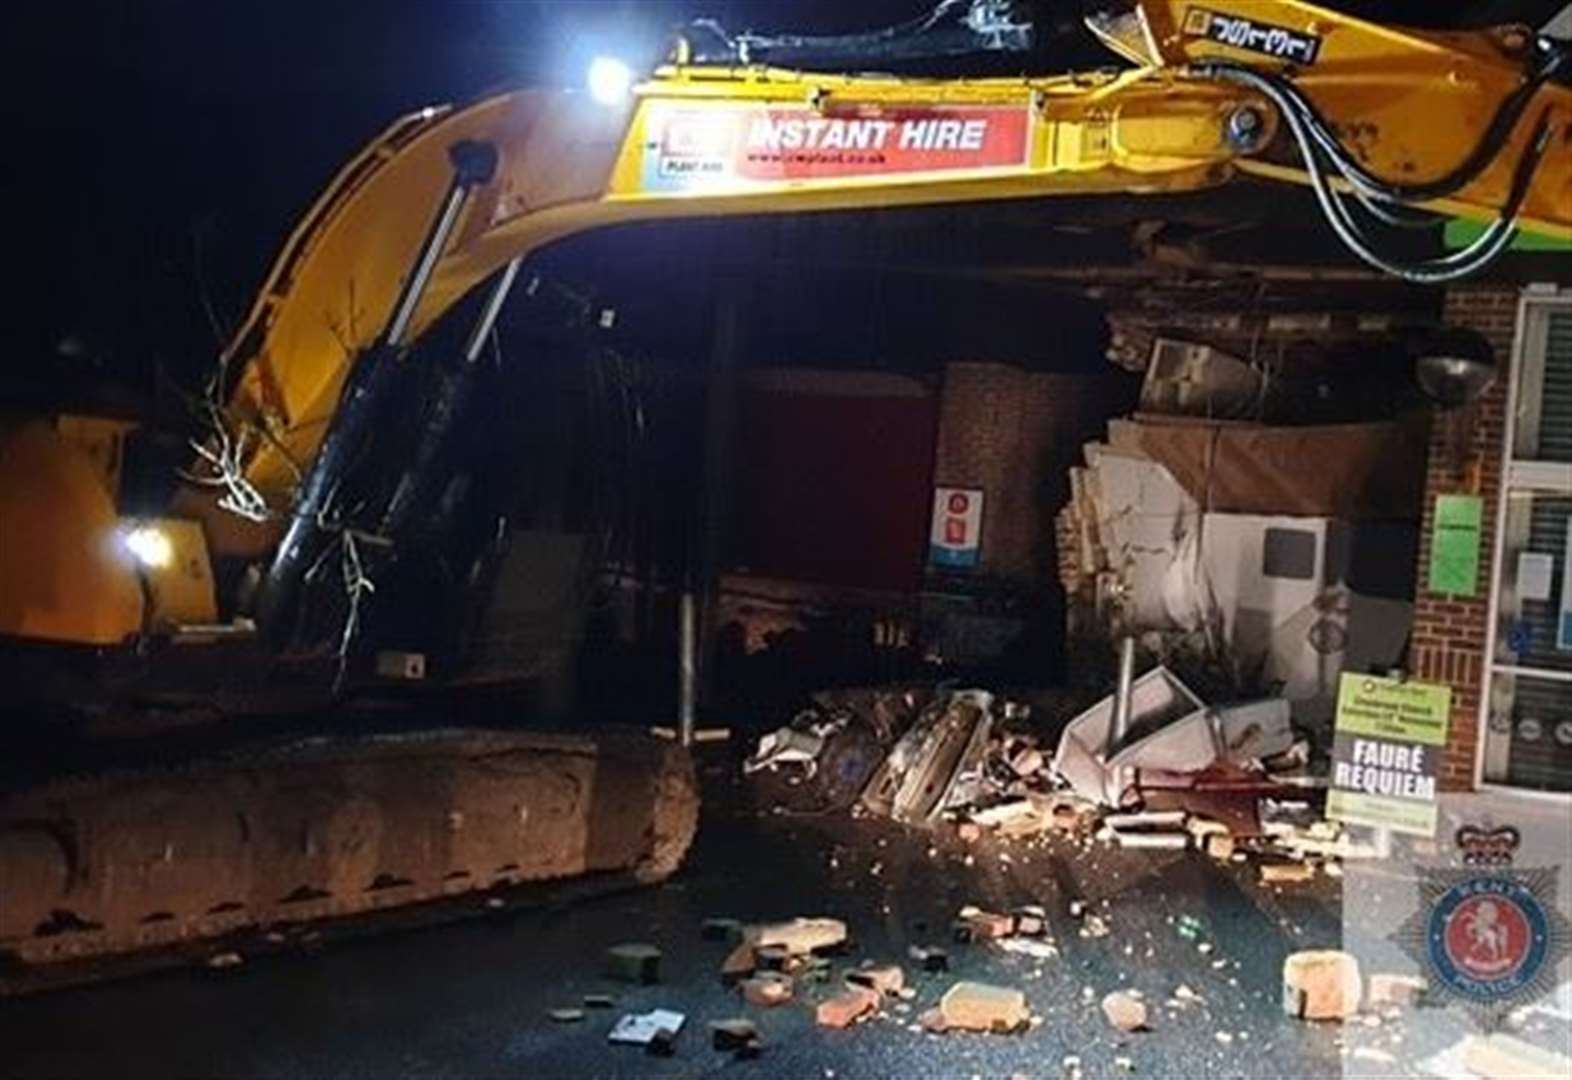 Digger used to smash open cash machine